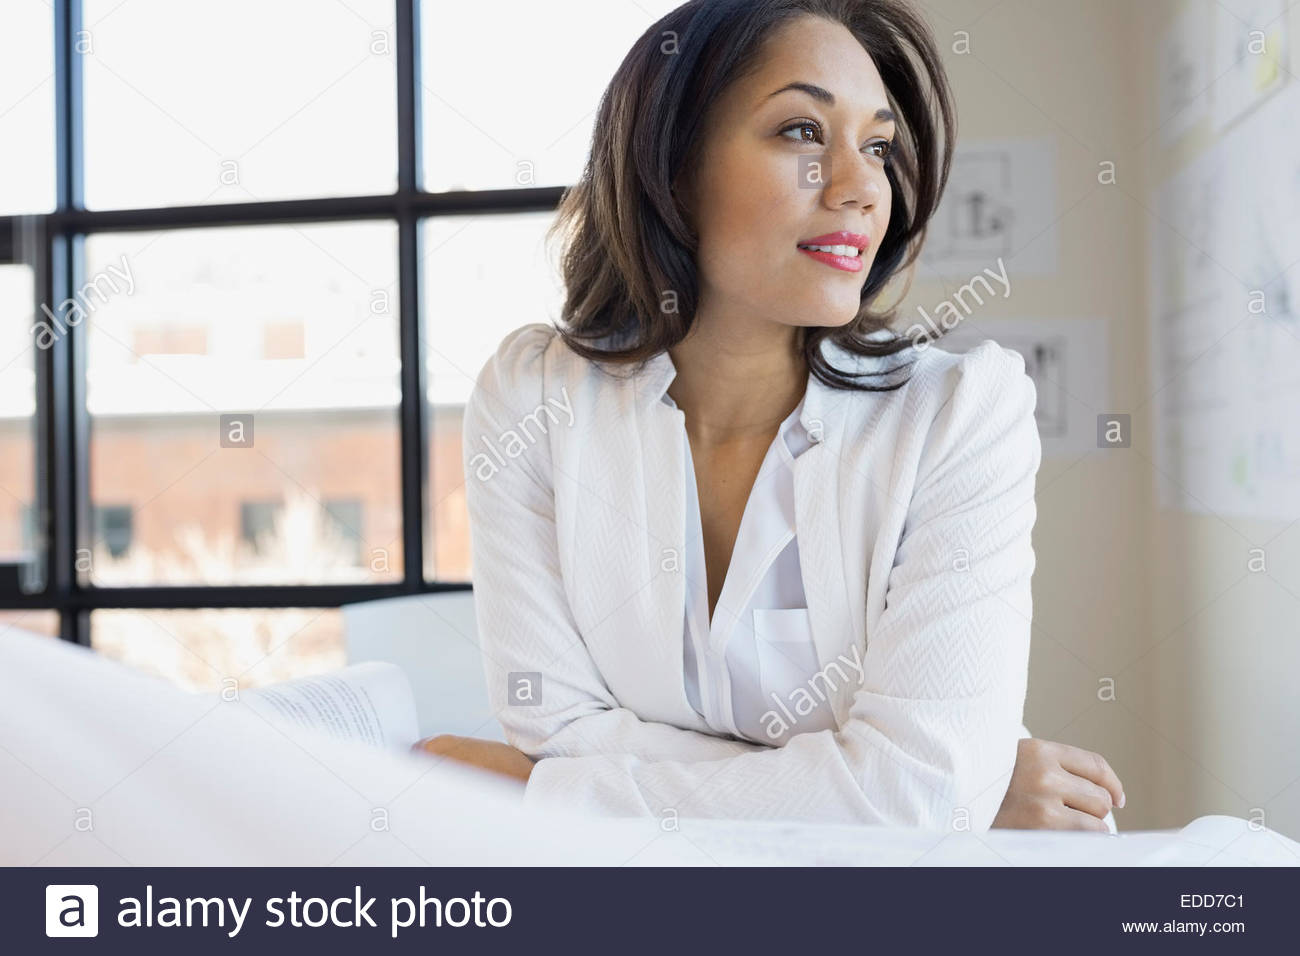 Pensive architect looking away in office - Stock Image